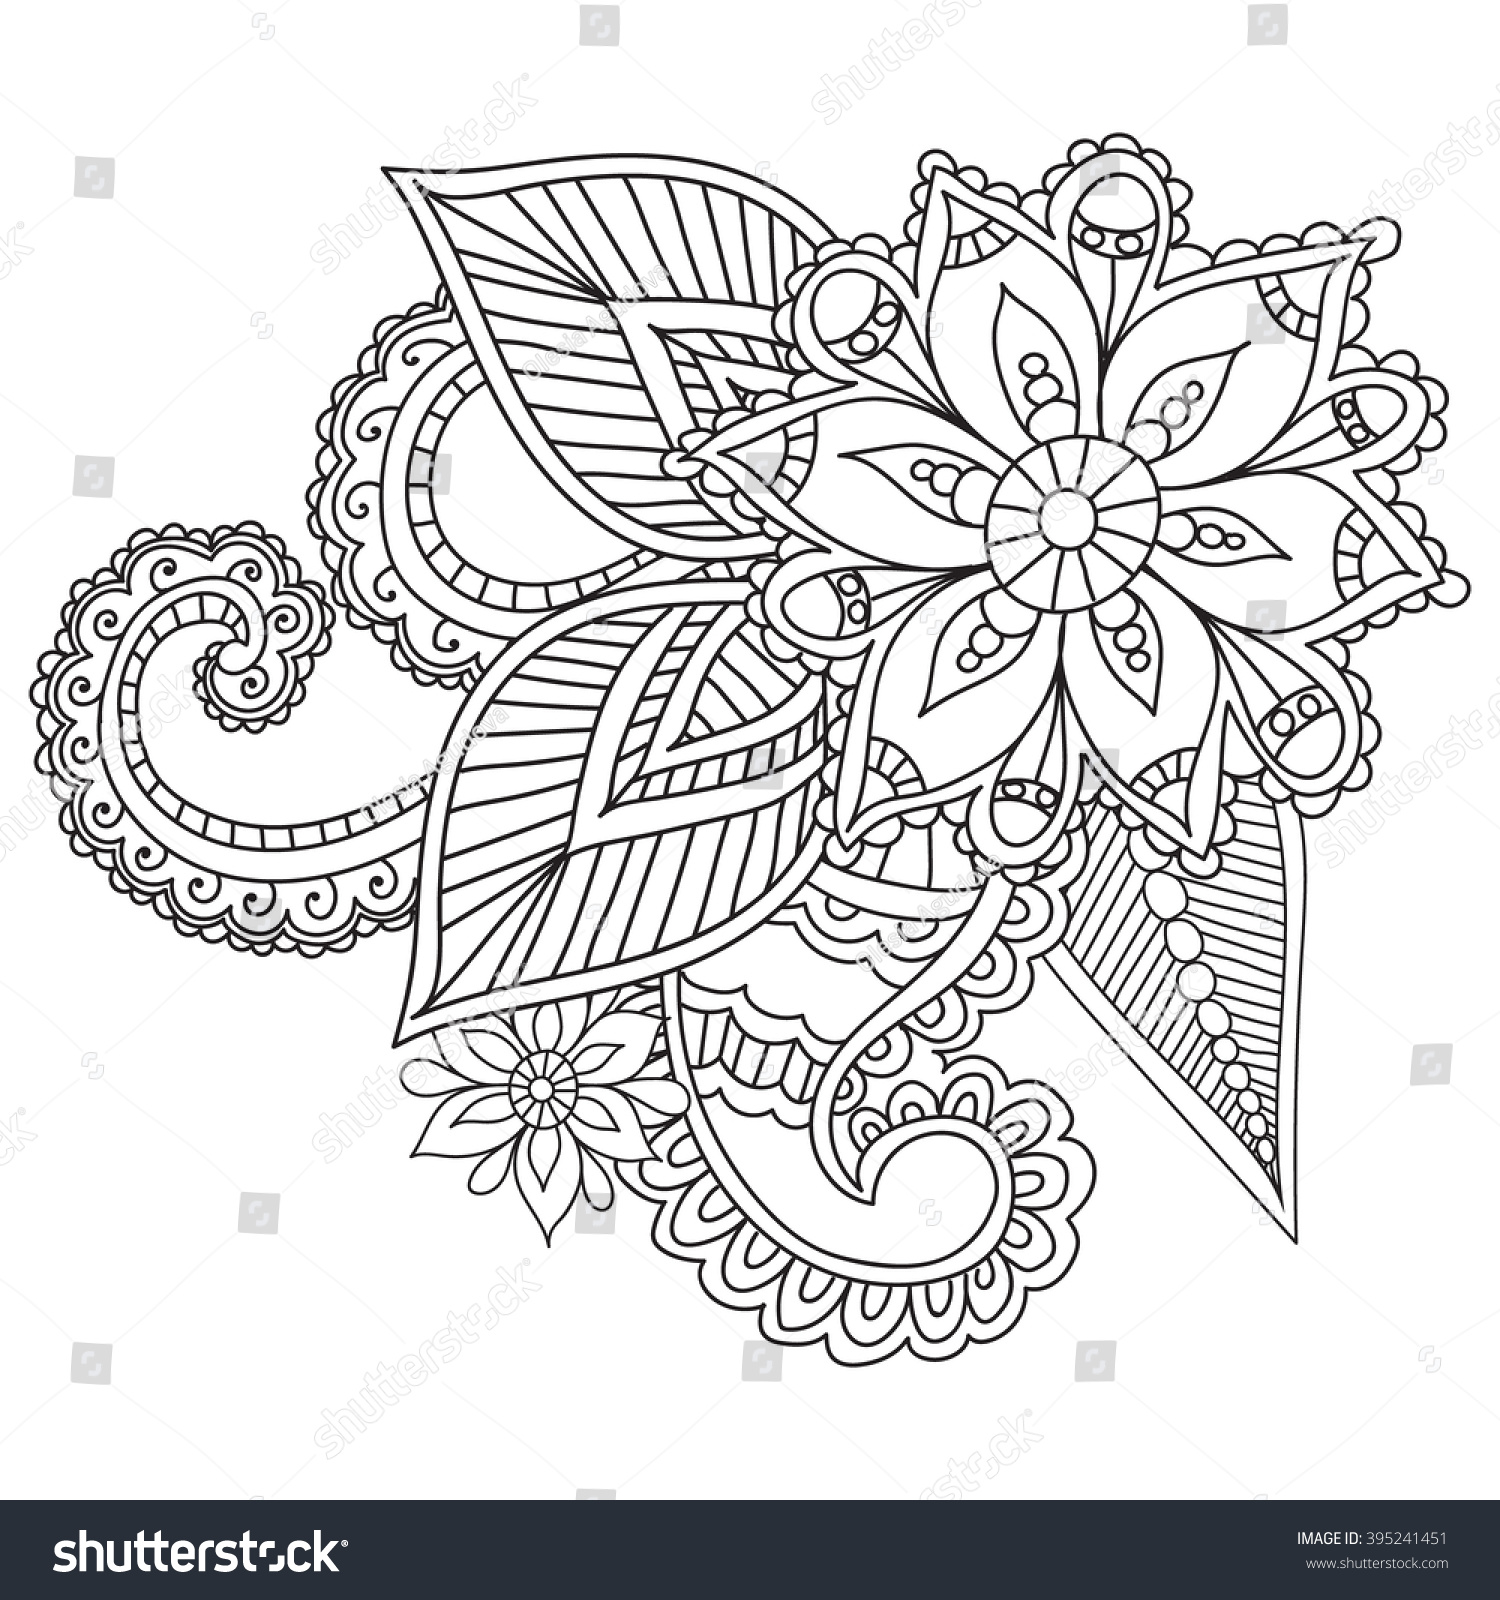 Coloring Pages For Adults Henna Mehndi Doodles Royalty Free Stock Vector 395241451 Avopix Com